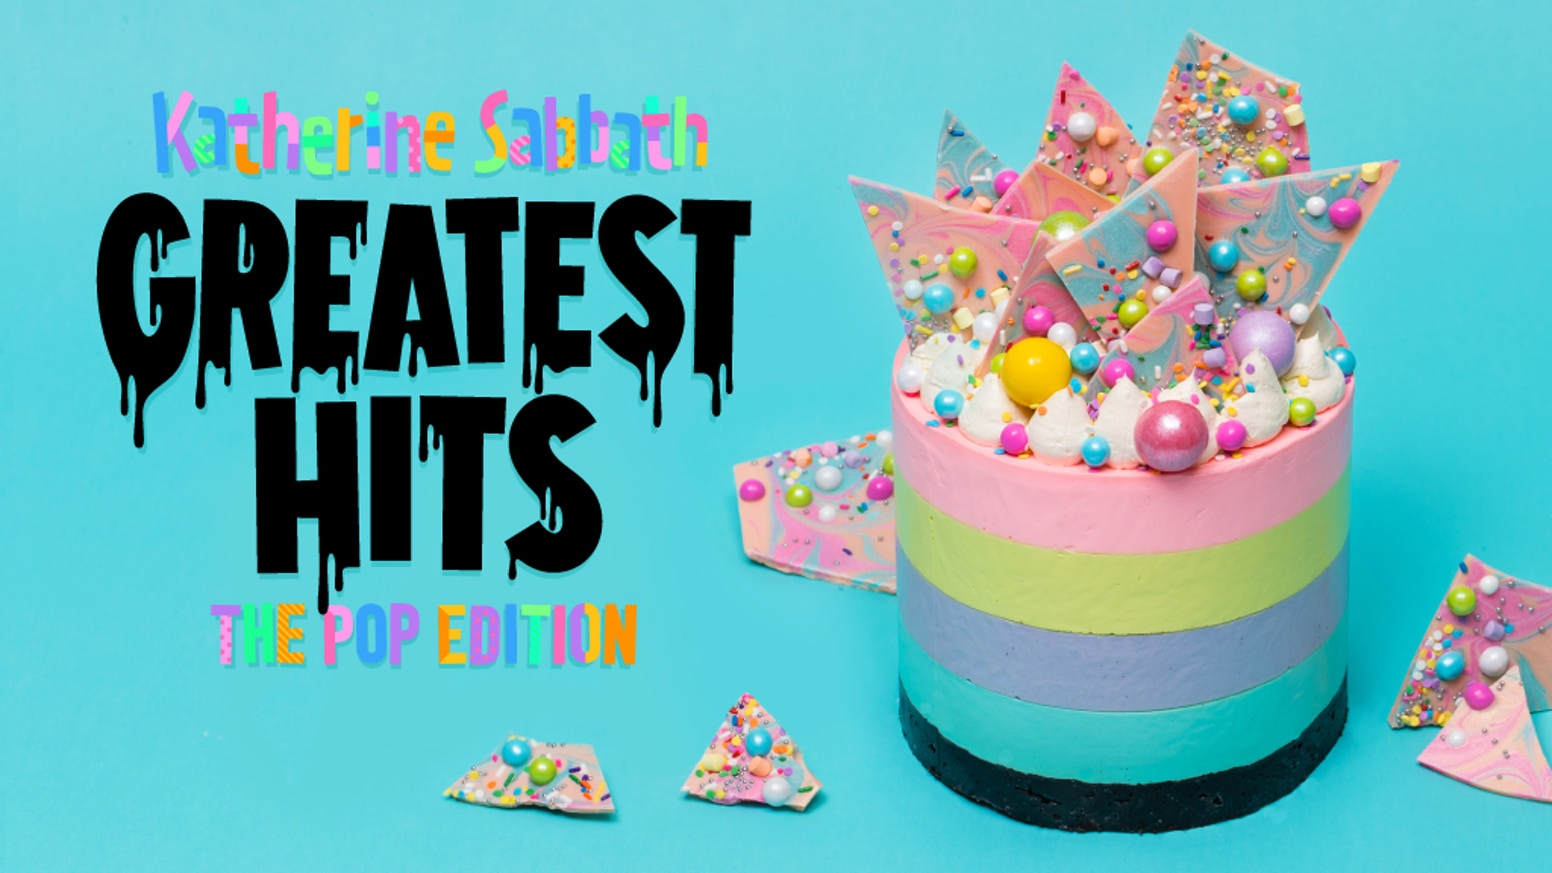 Katherine Sabbath - Greatest Hits: A Pop-Up Cake Cookbook by ...